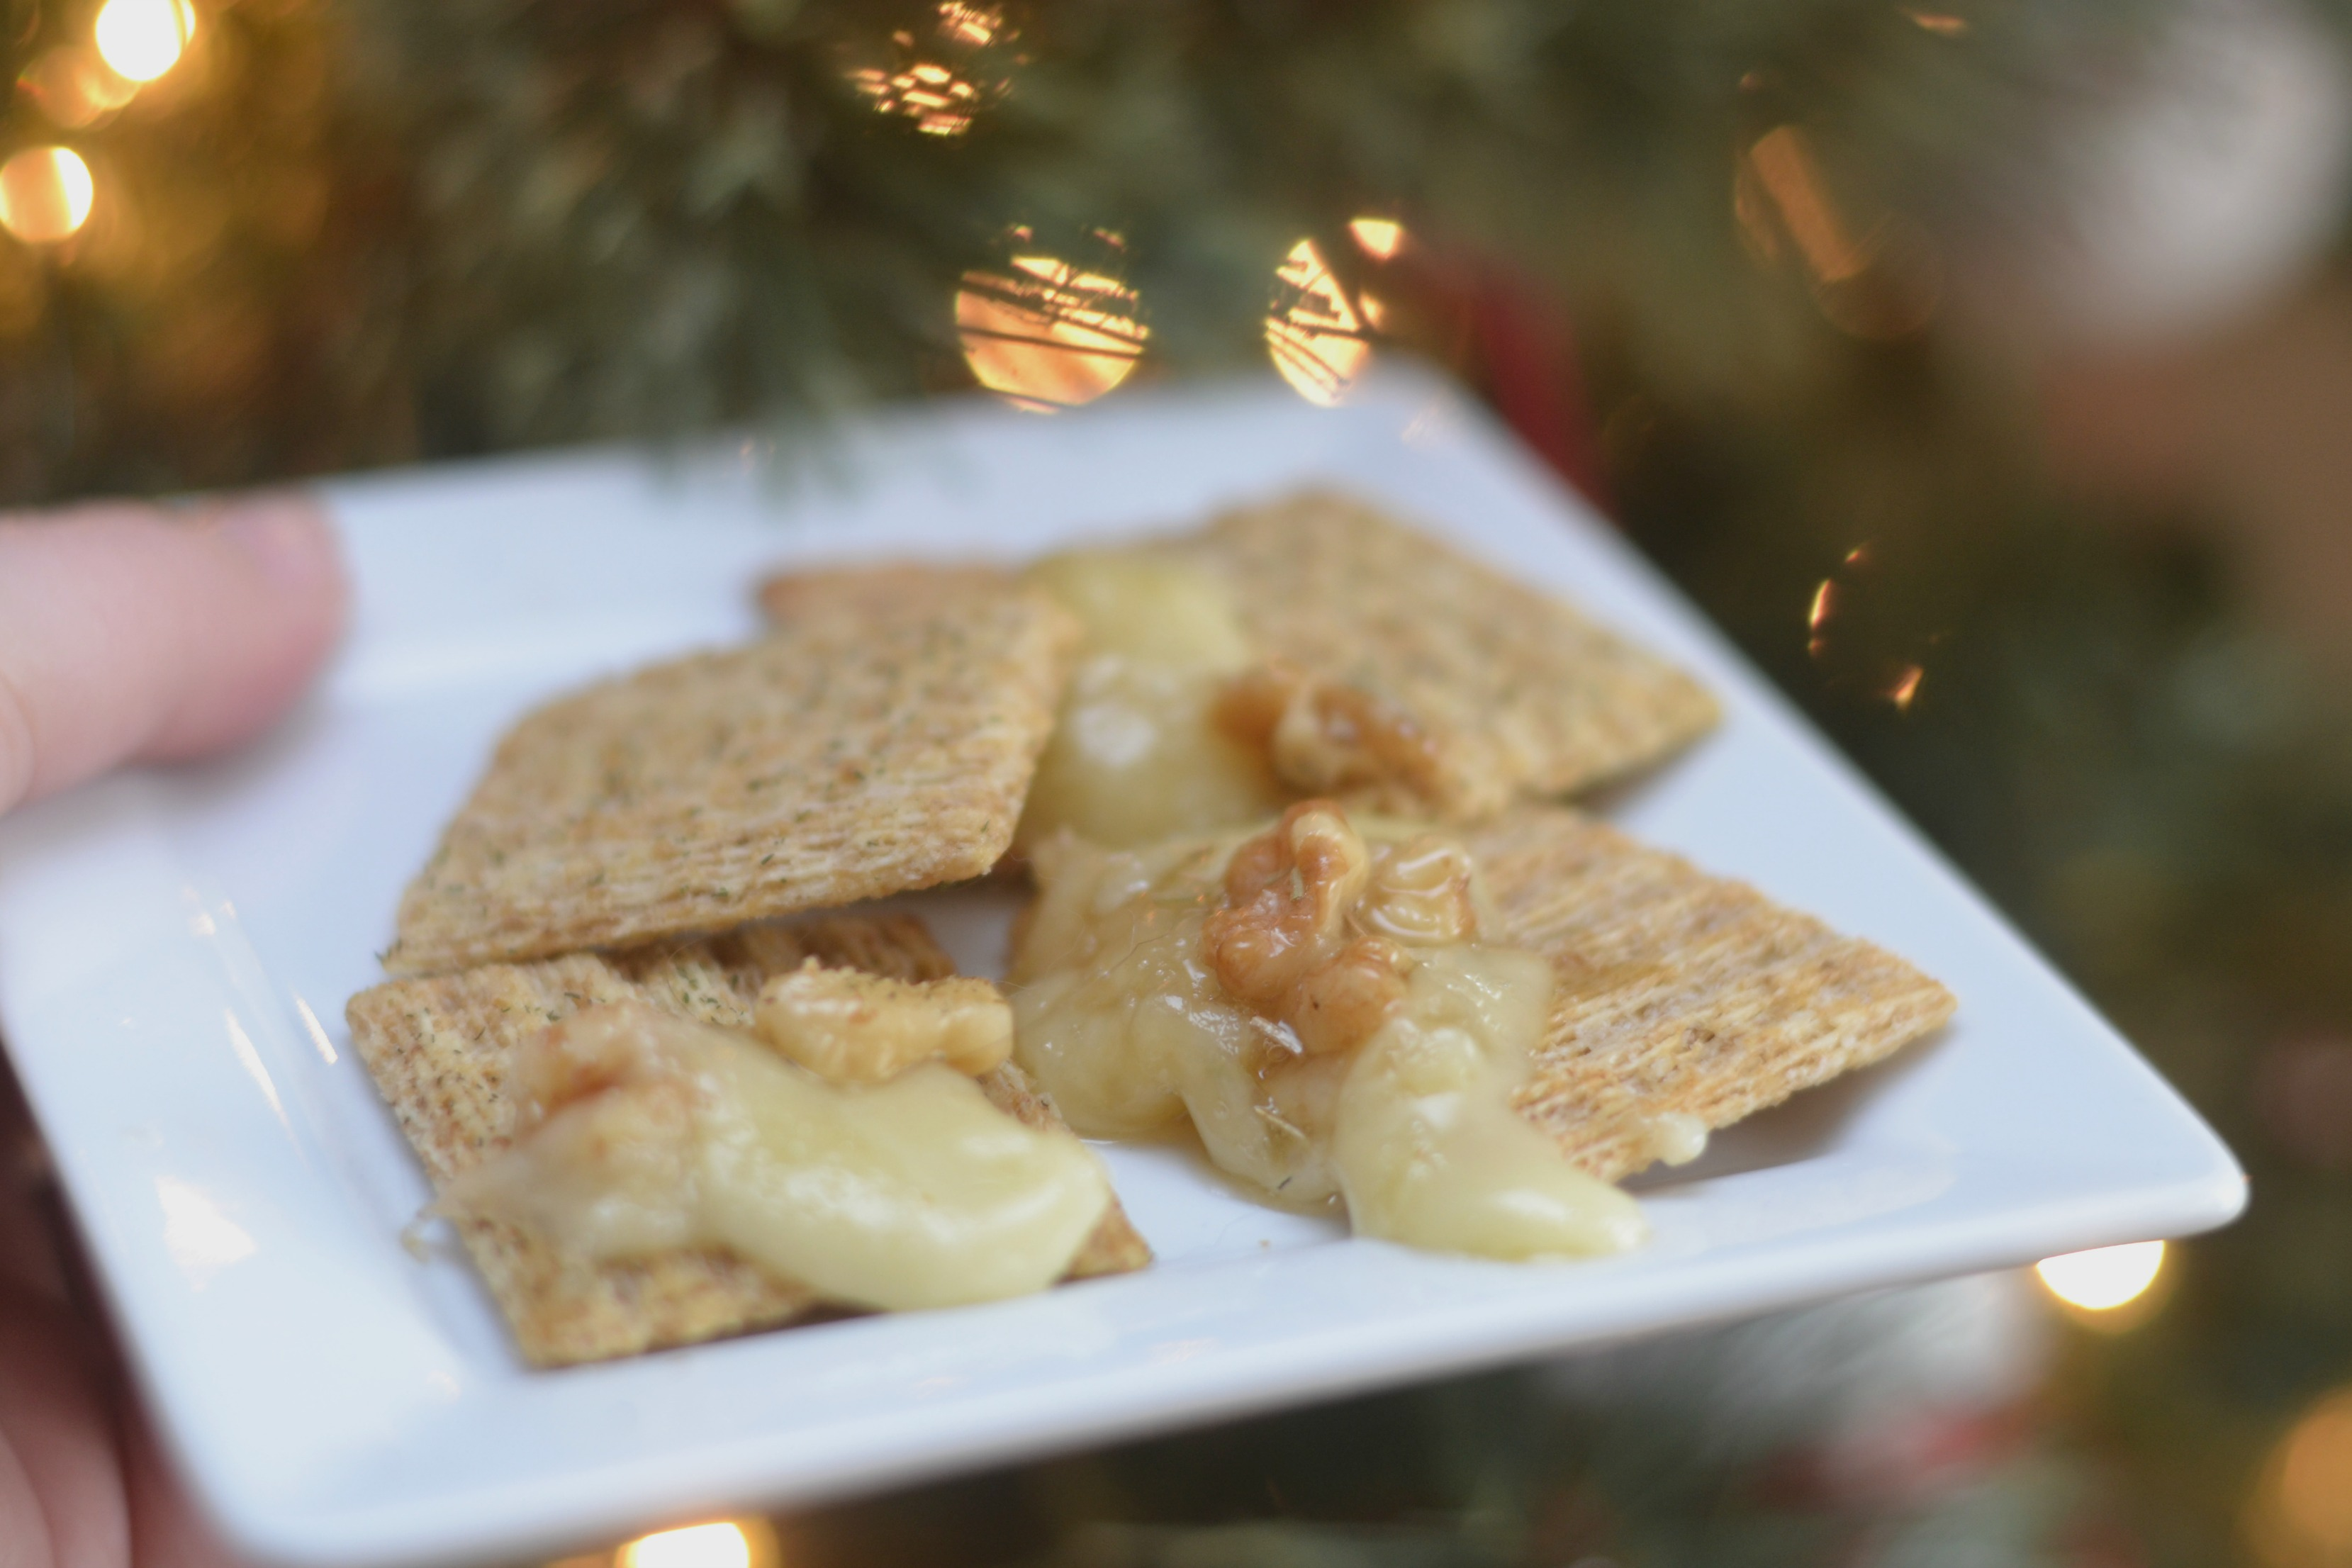 baked brie recipe, honey walnut baked brie, baked brie, brie recipes, how to make a baked brie appetizer, holiday baked brie, holiday baked brie recipe, honey baked brie, easy baked brie recipes